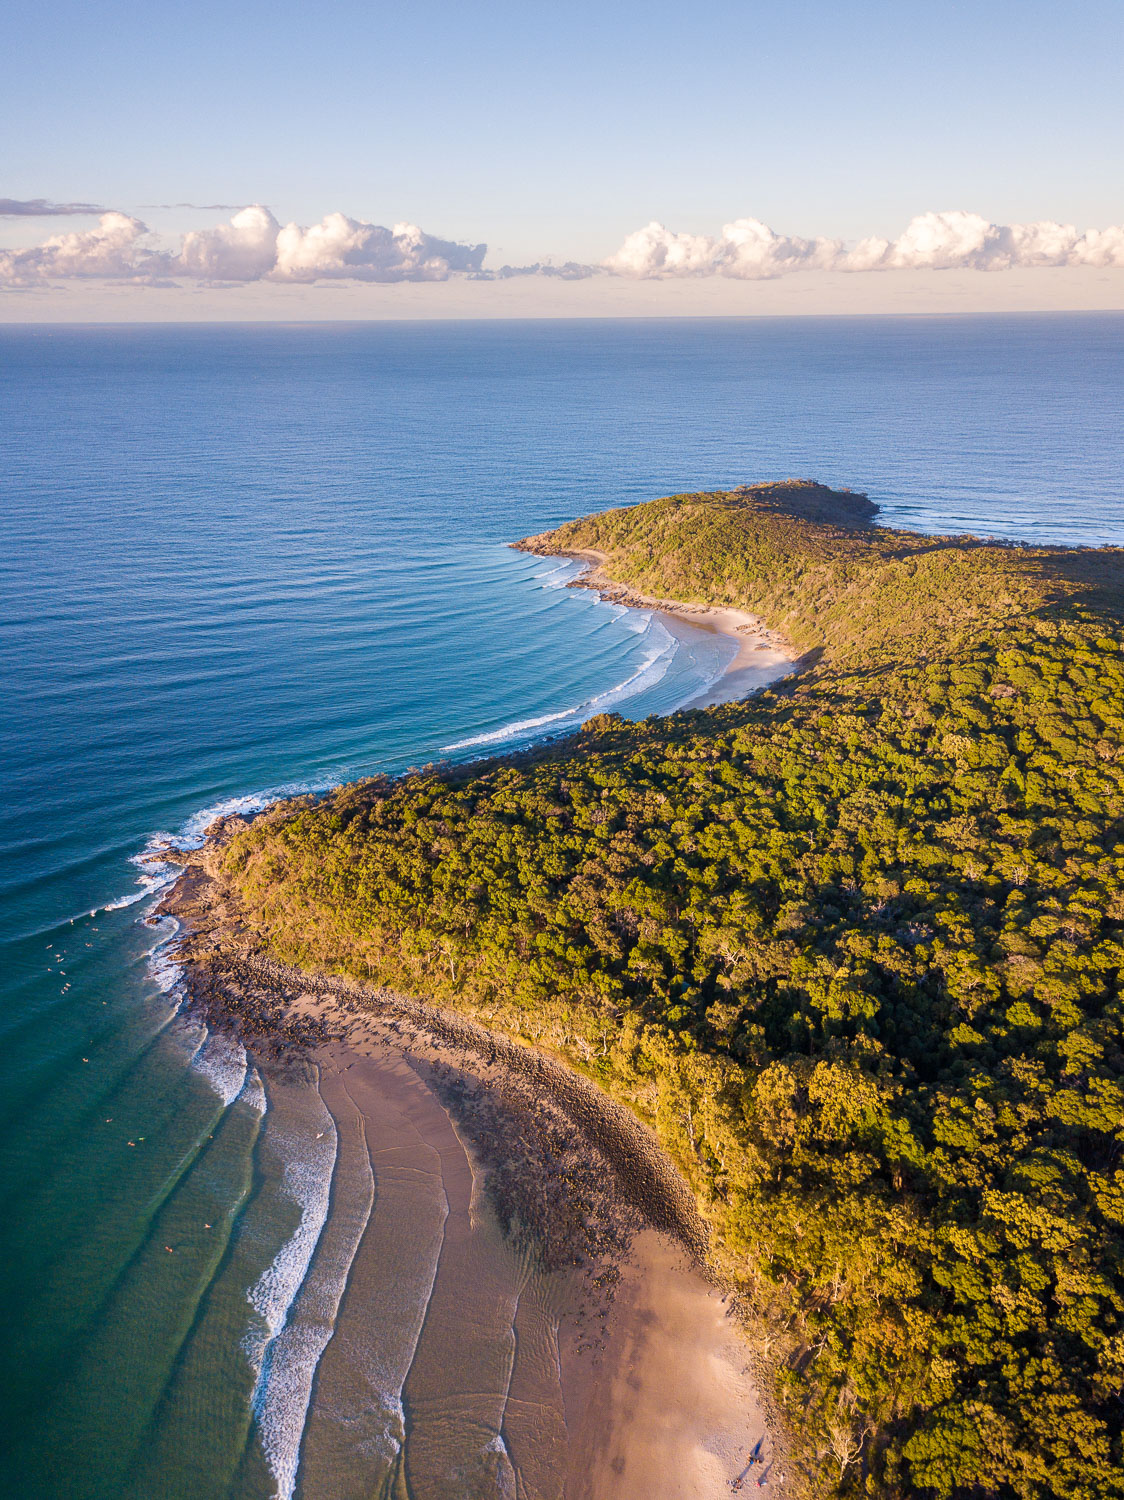 How to Work the Scene to Get More Great Photos - aerial view of coastline